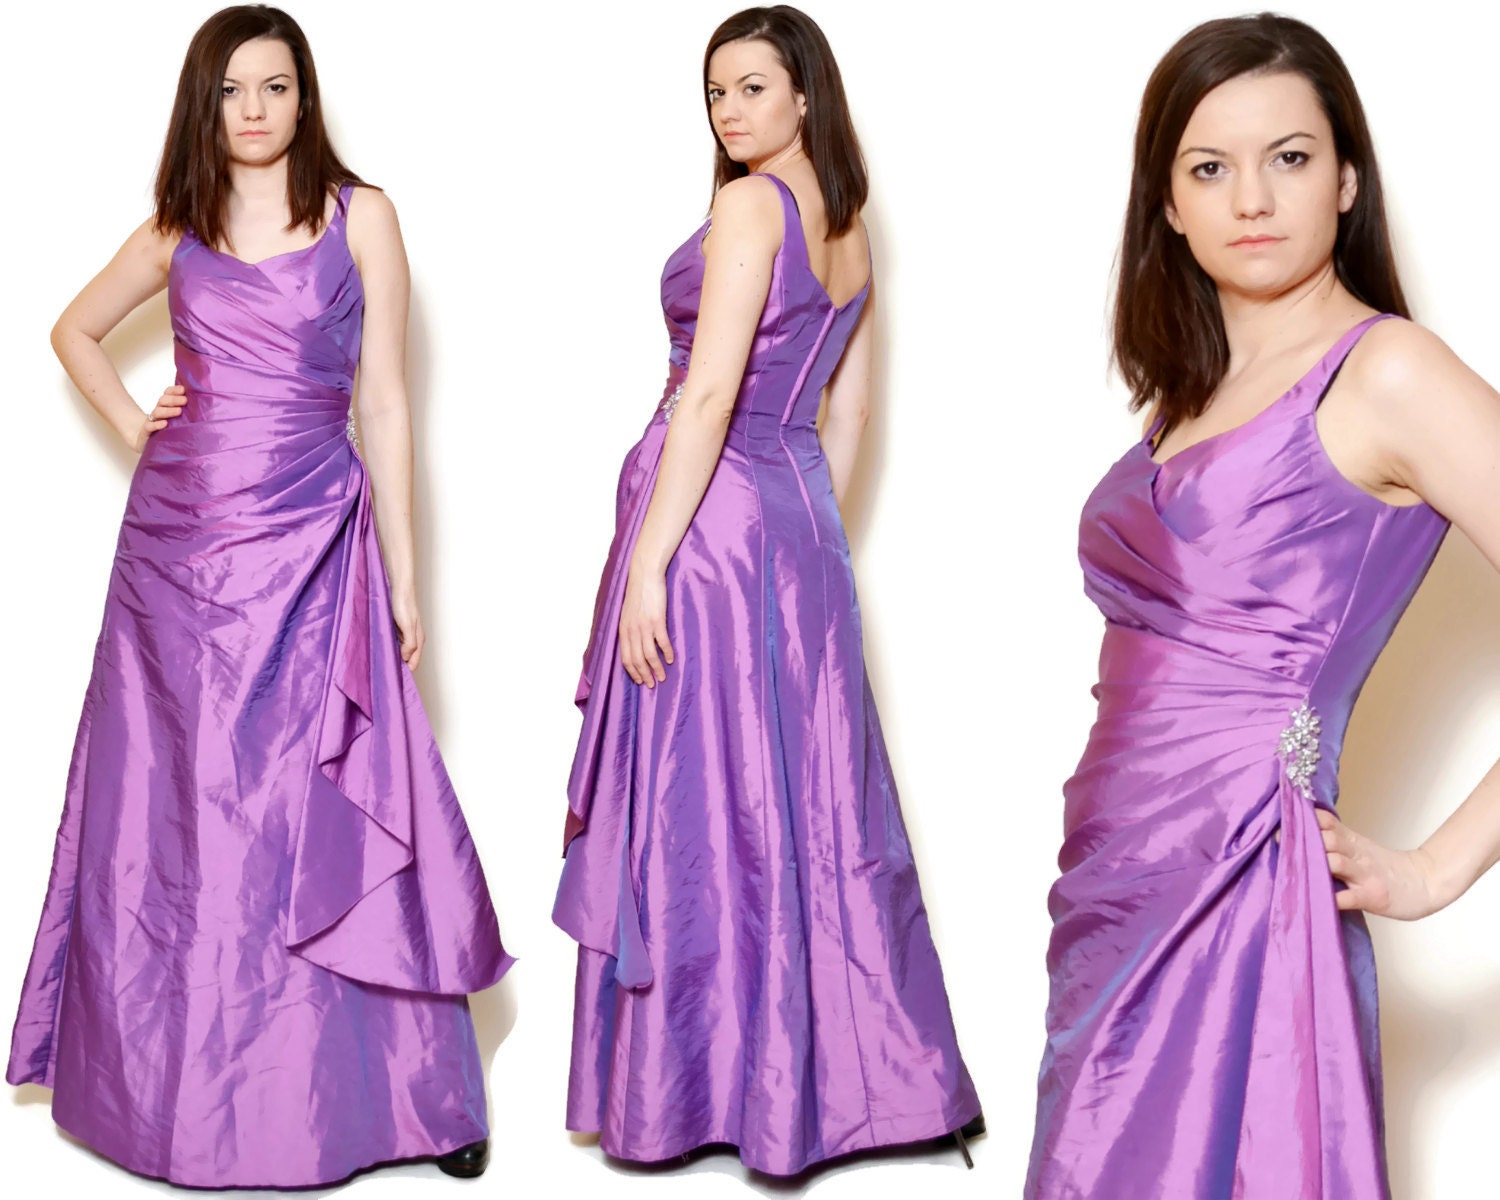 90s prom dress draped dresses embroidered floral pattern